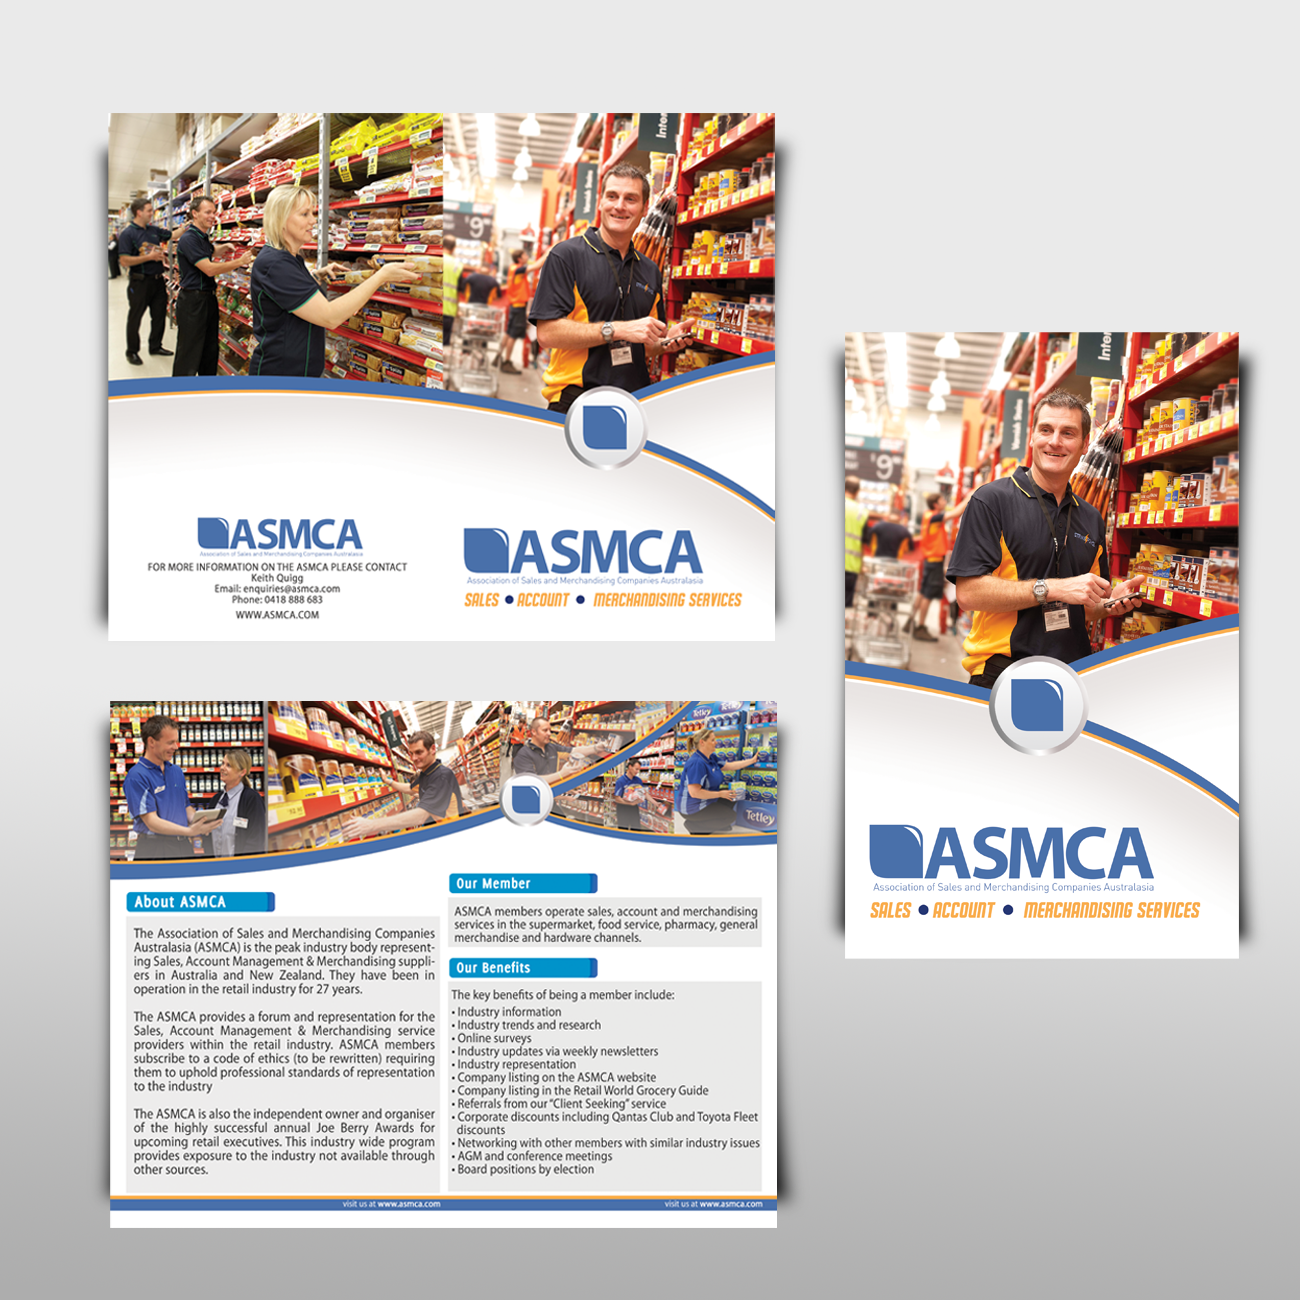 ASMCA (The Association of Sales and Merchandising Companies Australasia) needs a new brochure design